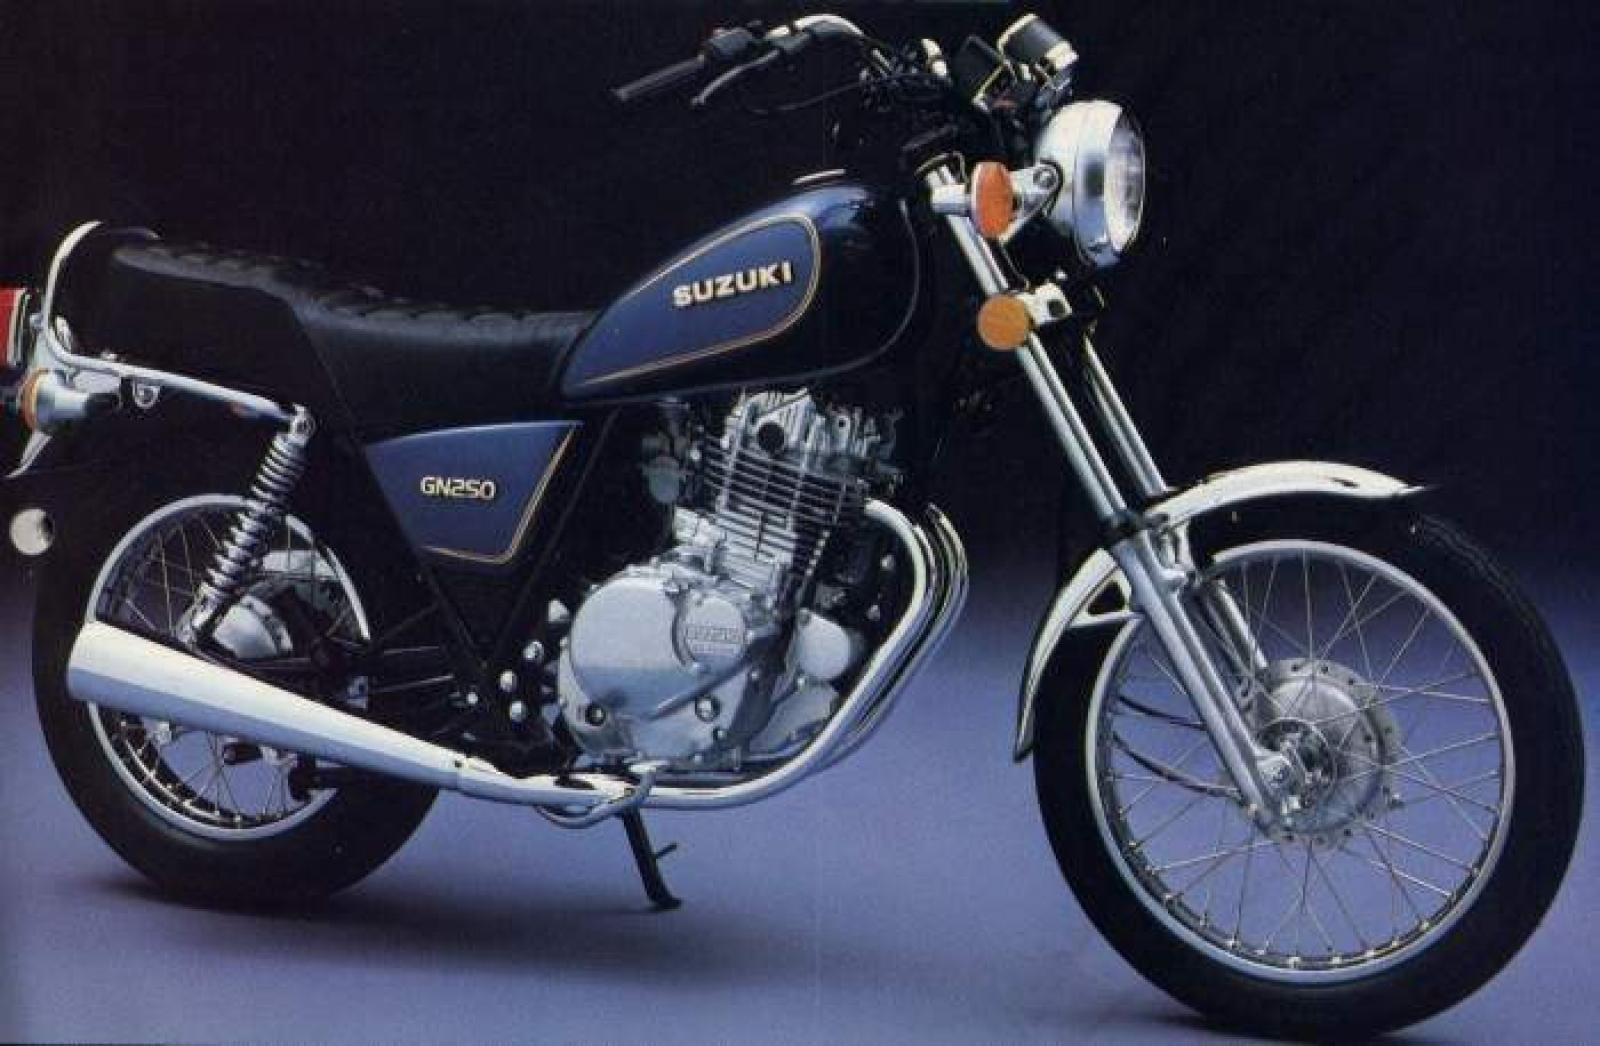 1990 Suzuki Gn 250 E Pics Specs And Information Motorcycle 6 Volt Wiring Diagram 40556